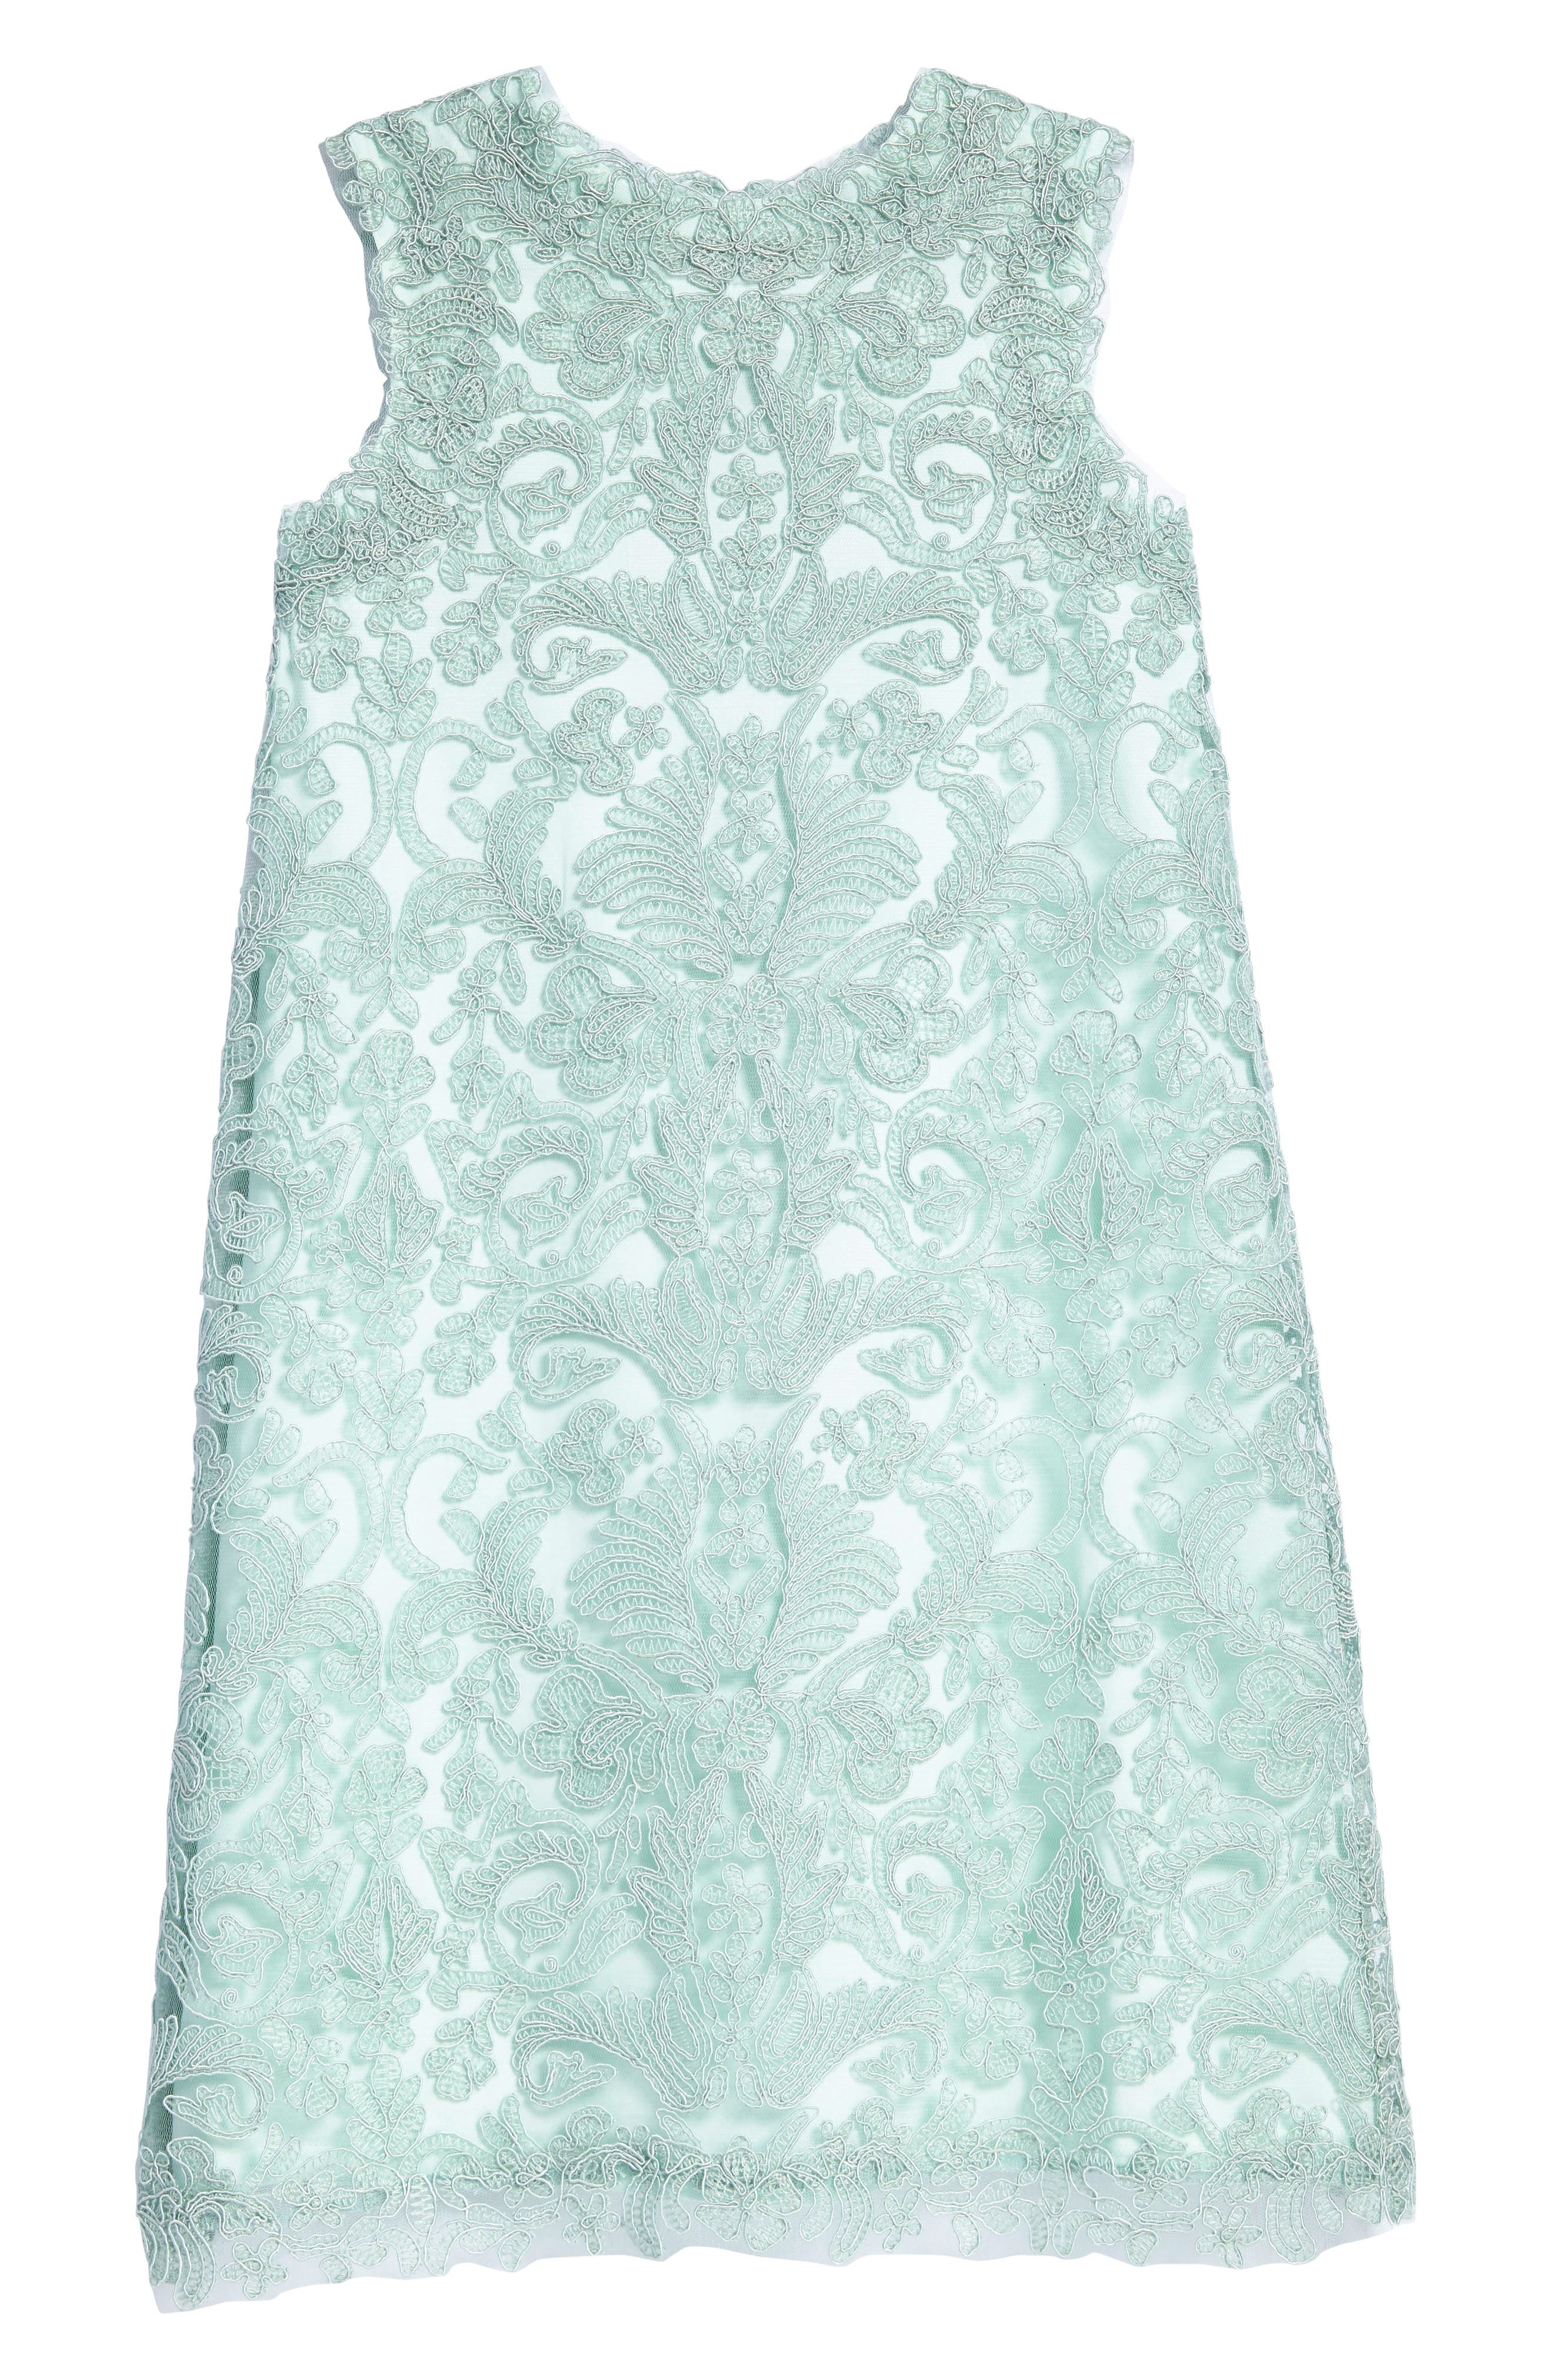 Alternate Image 1 Selected - Tadashi Shoji 'Honeysuckle' Embroidered Tulle Dress (Toddler Girls, Little Girls & Big Girls)